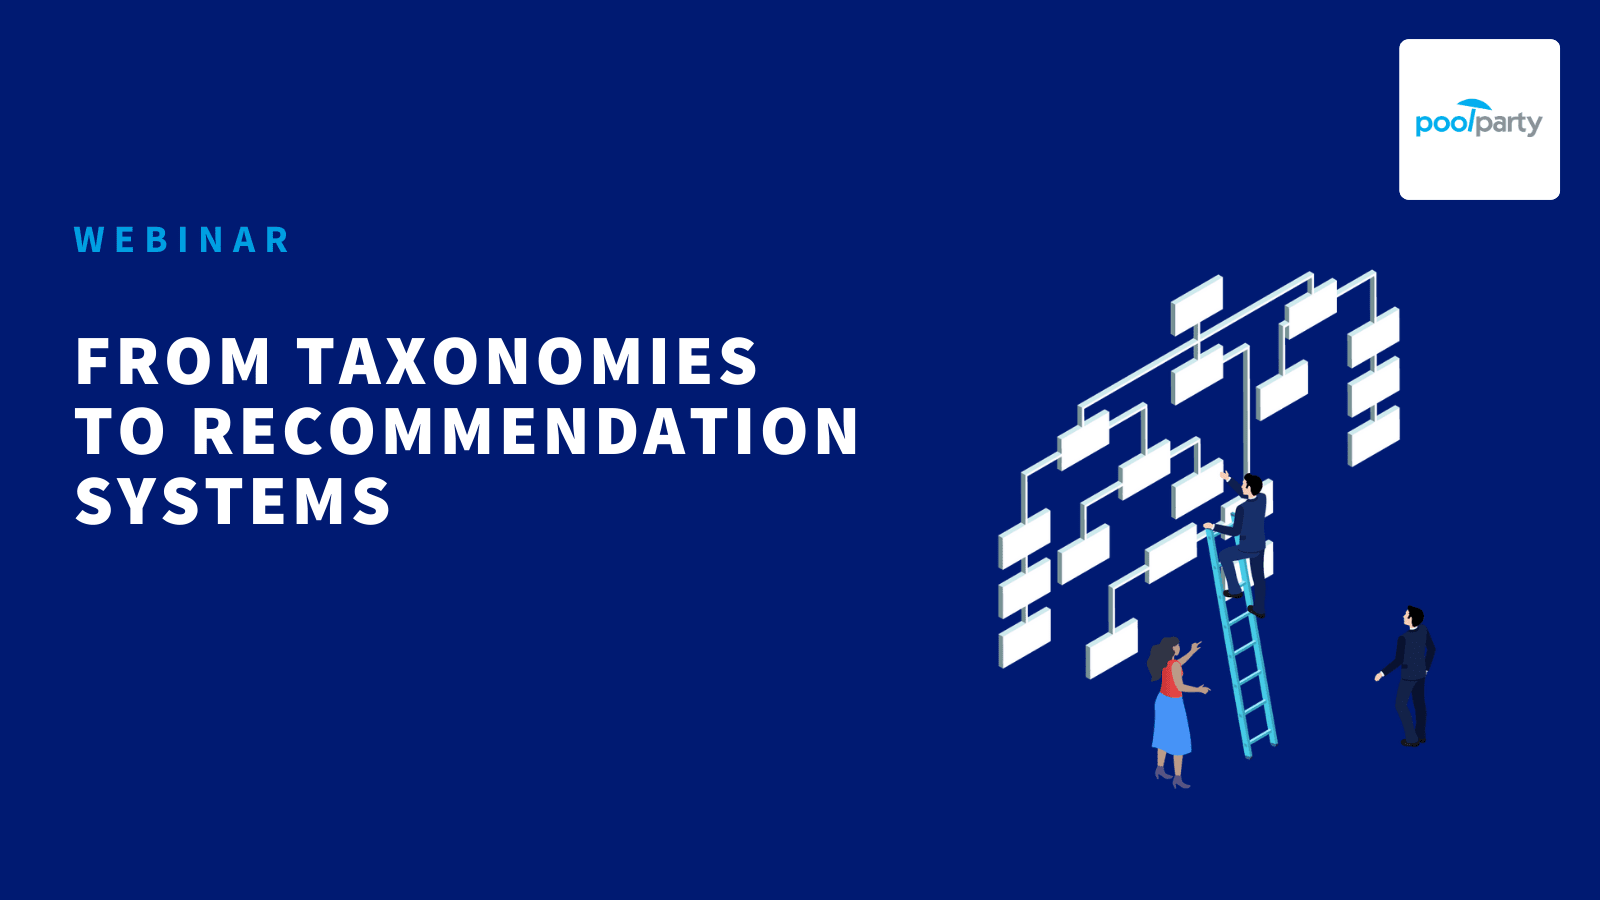 Webinar_ From Taxonomies to Recommendation Systems